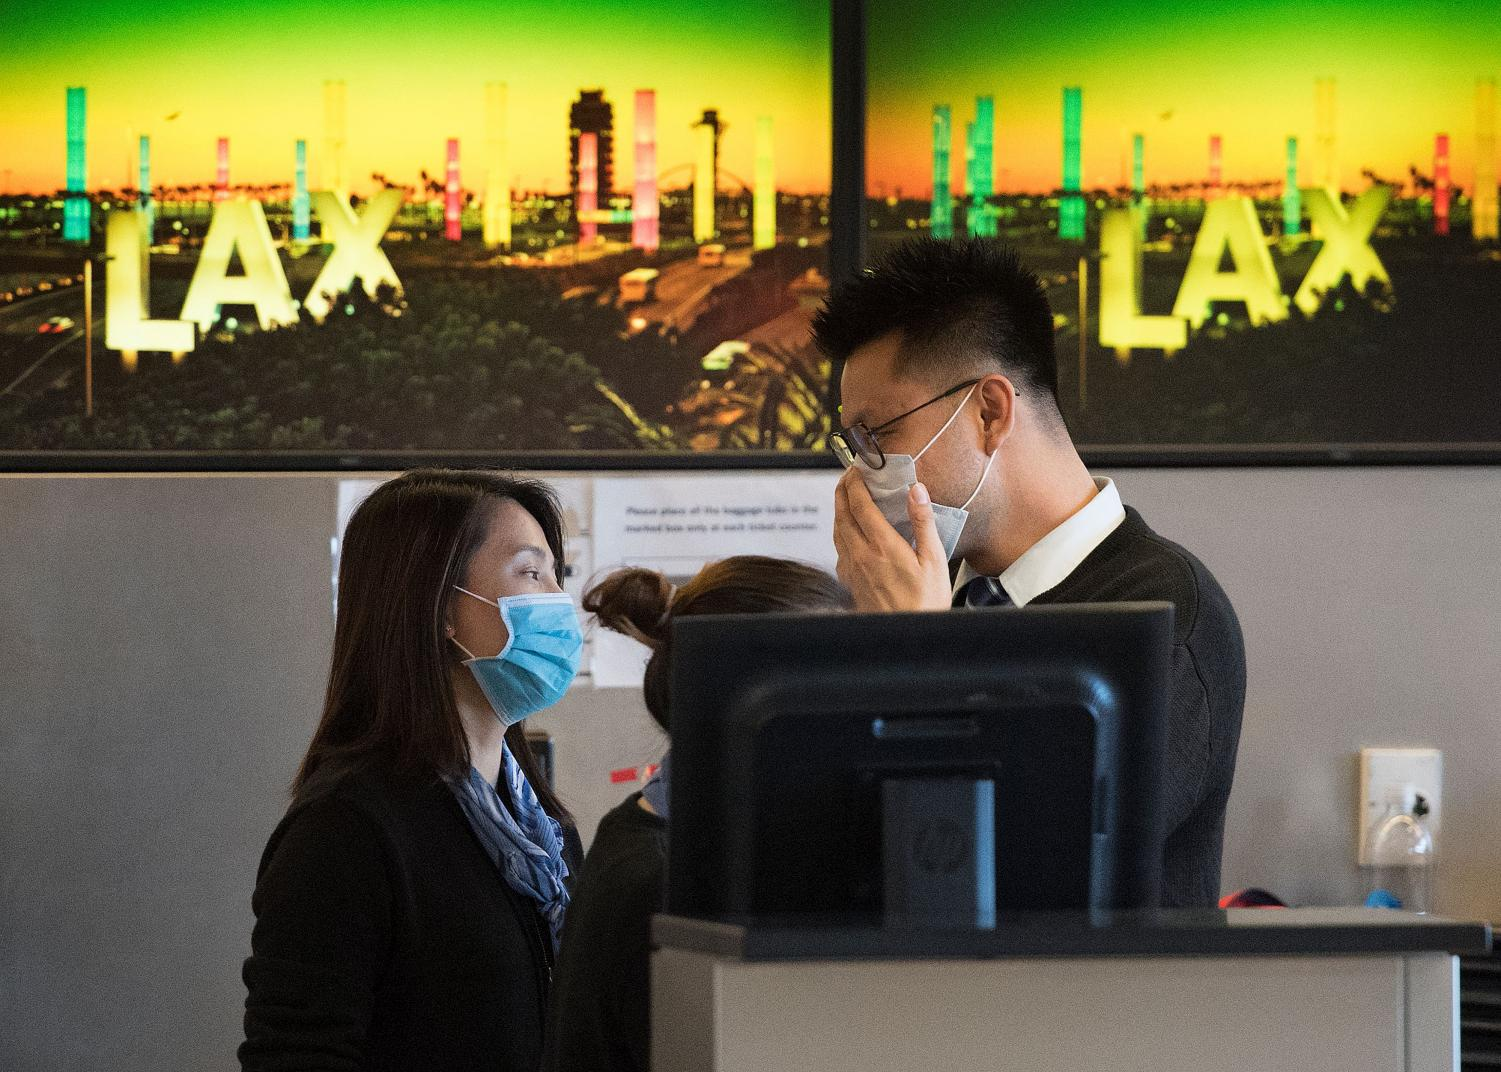 Airline check-in staff at LAX airport wear a face mask to protect themselves from the coronavirus.